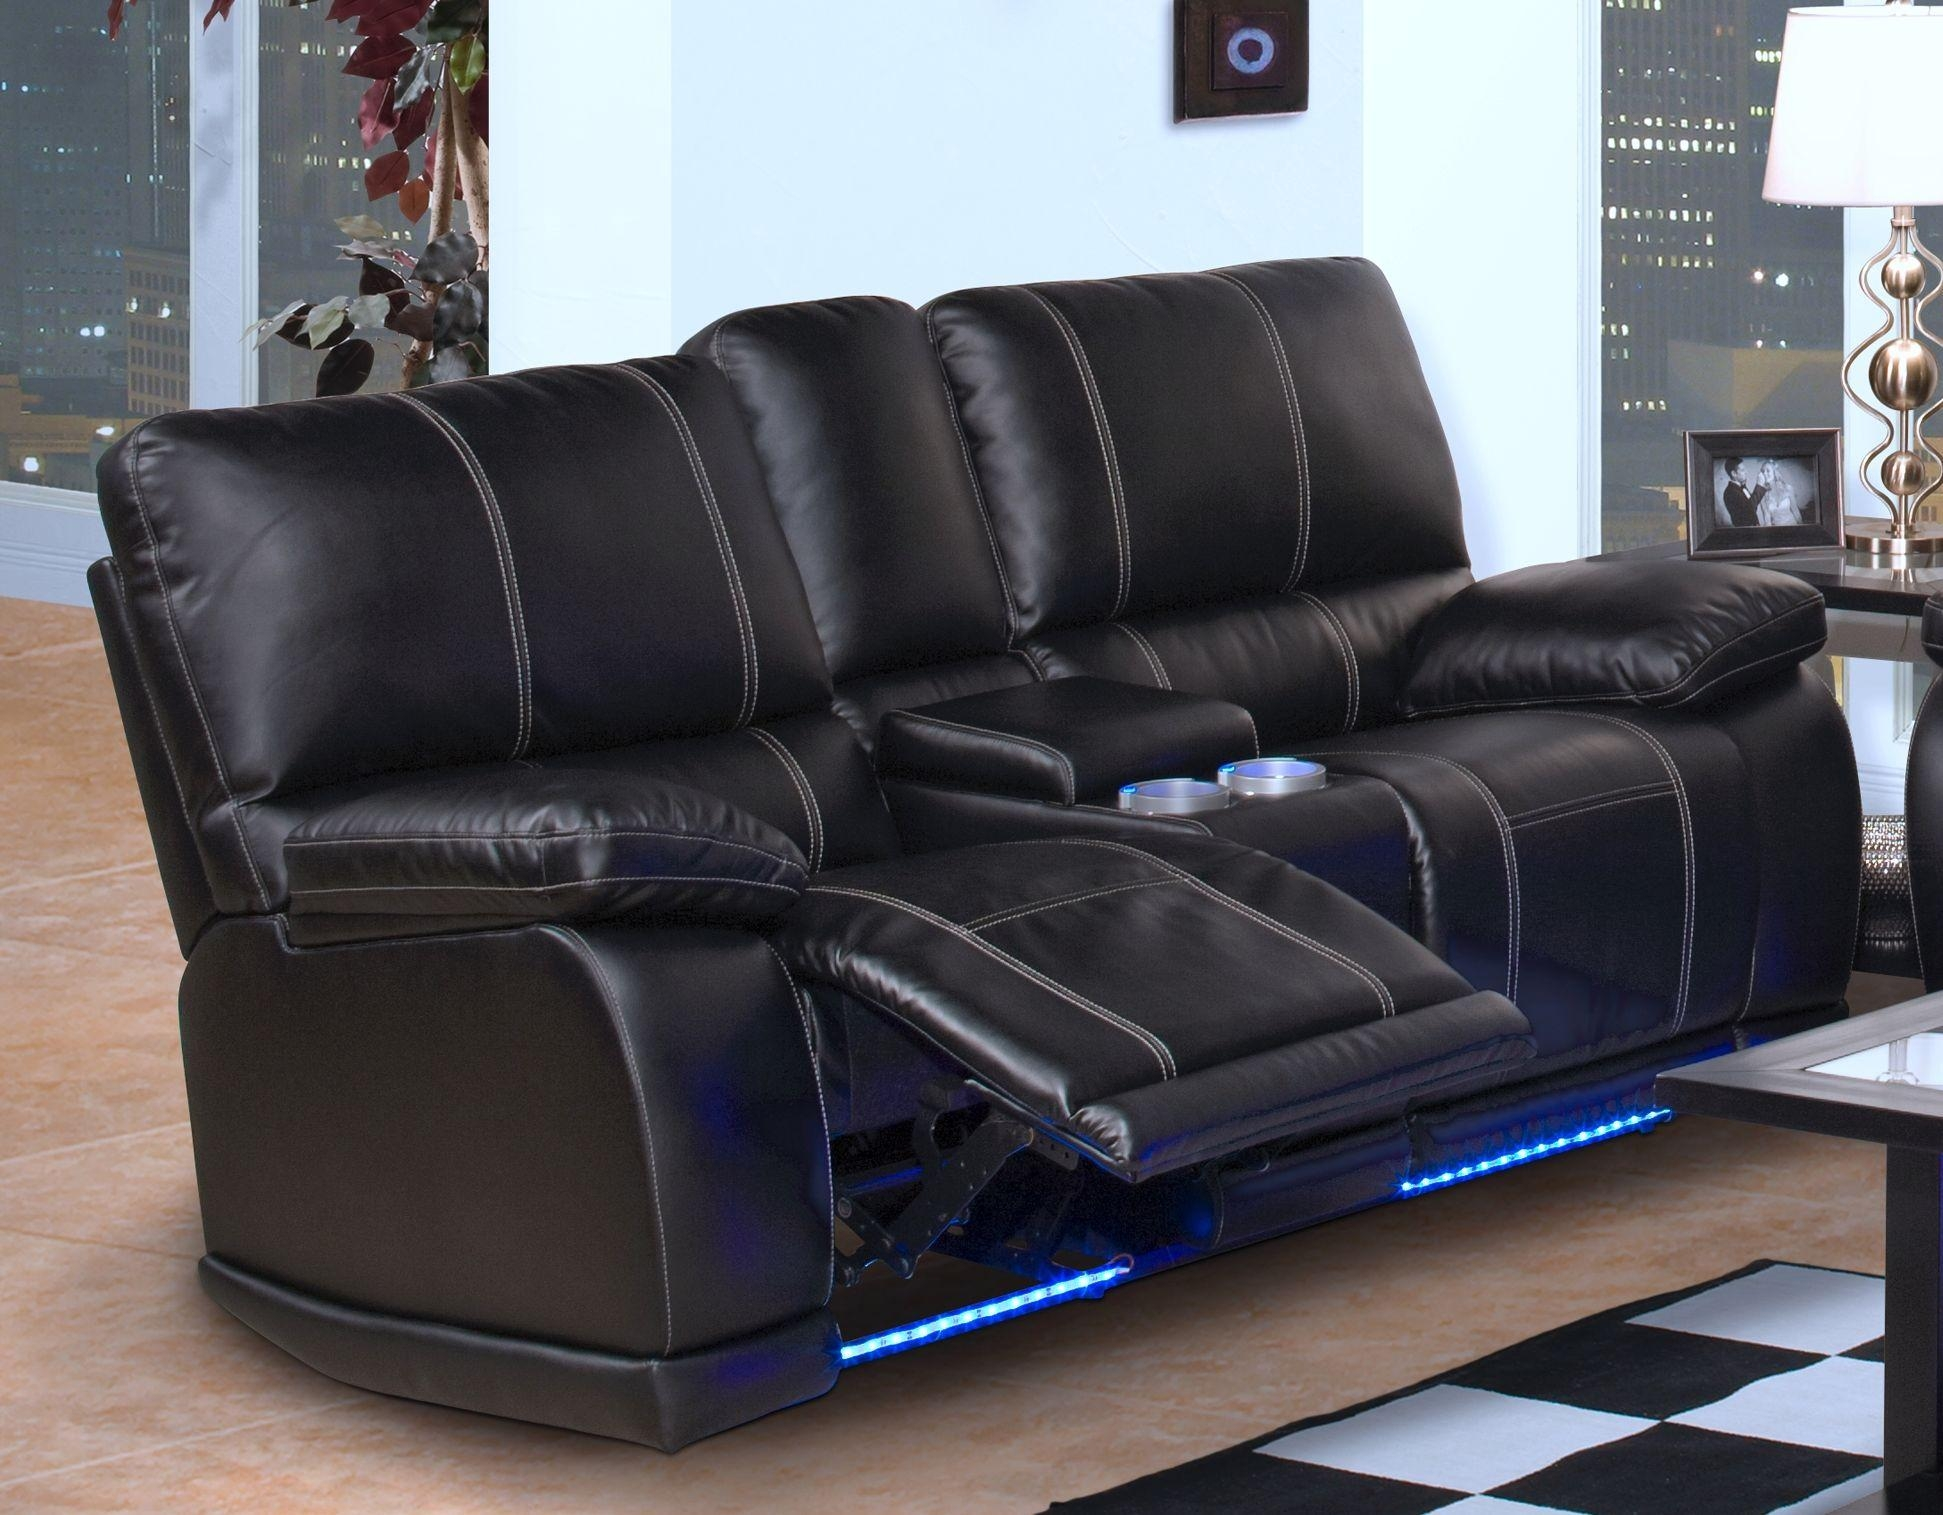 Furniture: Find Your Maximum Comfort With Reclining Couches For Inside Lazy Boy Leather Sectional (View 19 of 20)